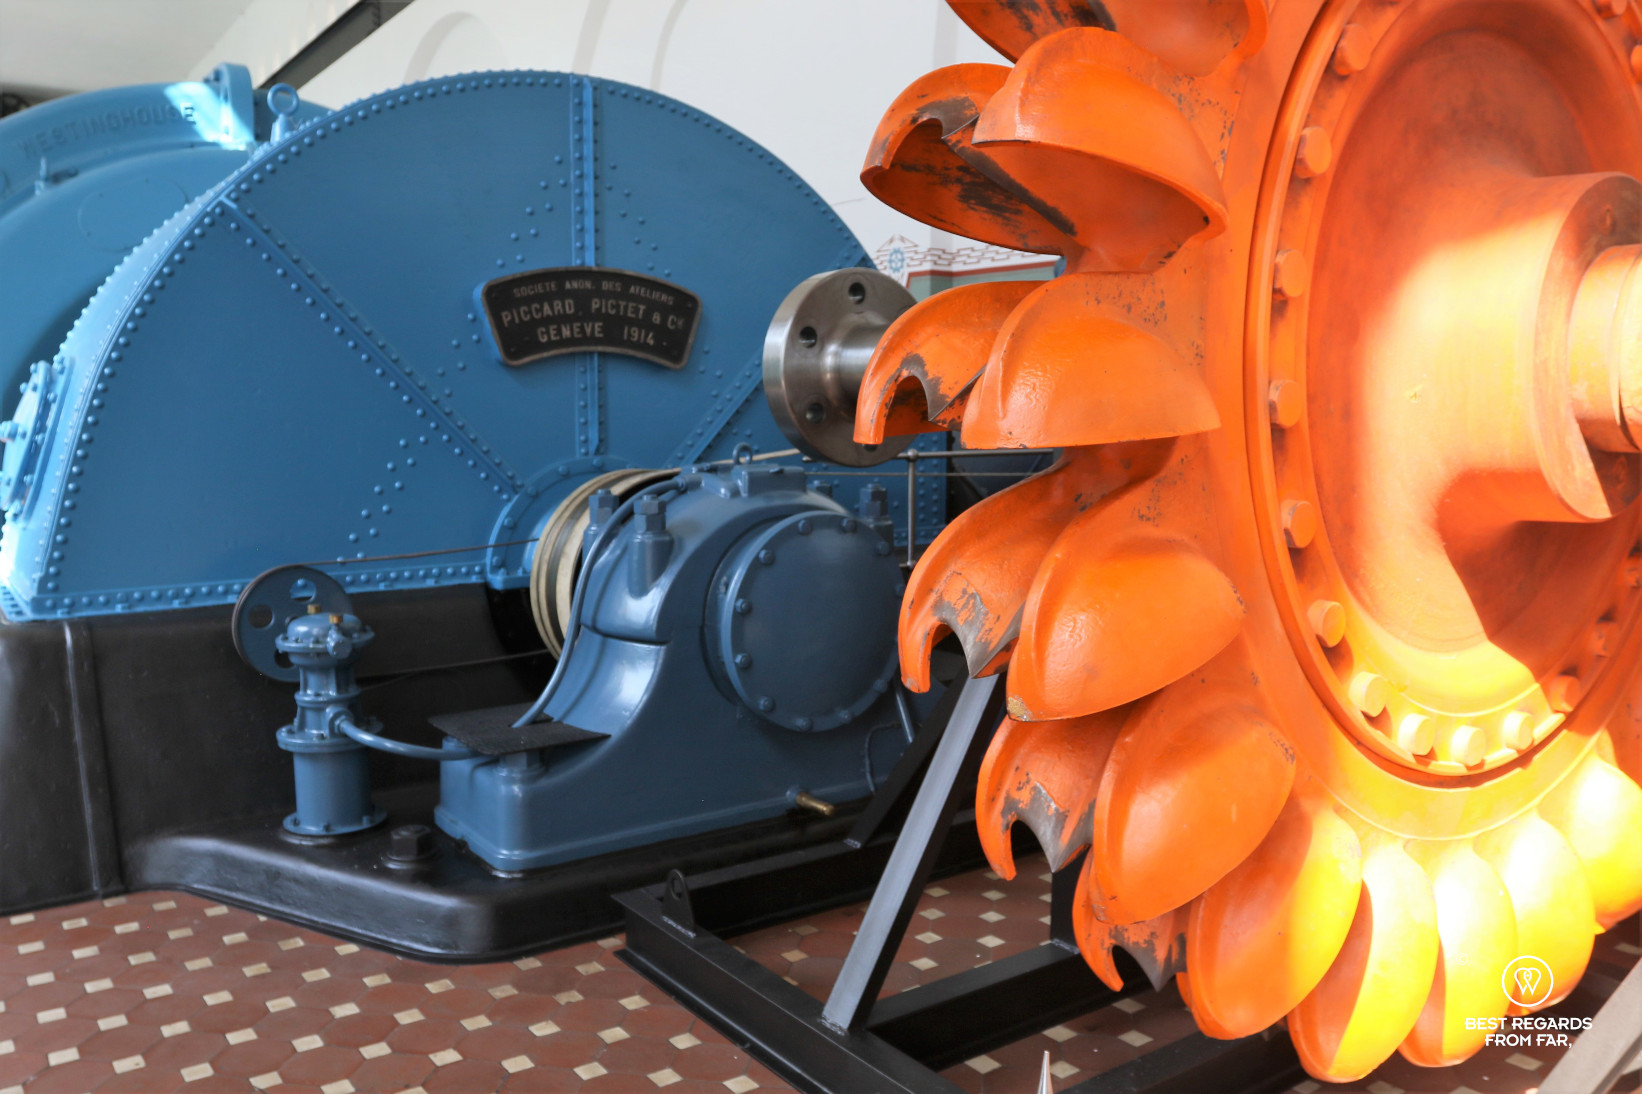 Turbine at the Norwegian Museum of Hydropower and Industry, Tyssedal, Norway